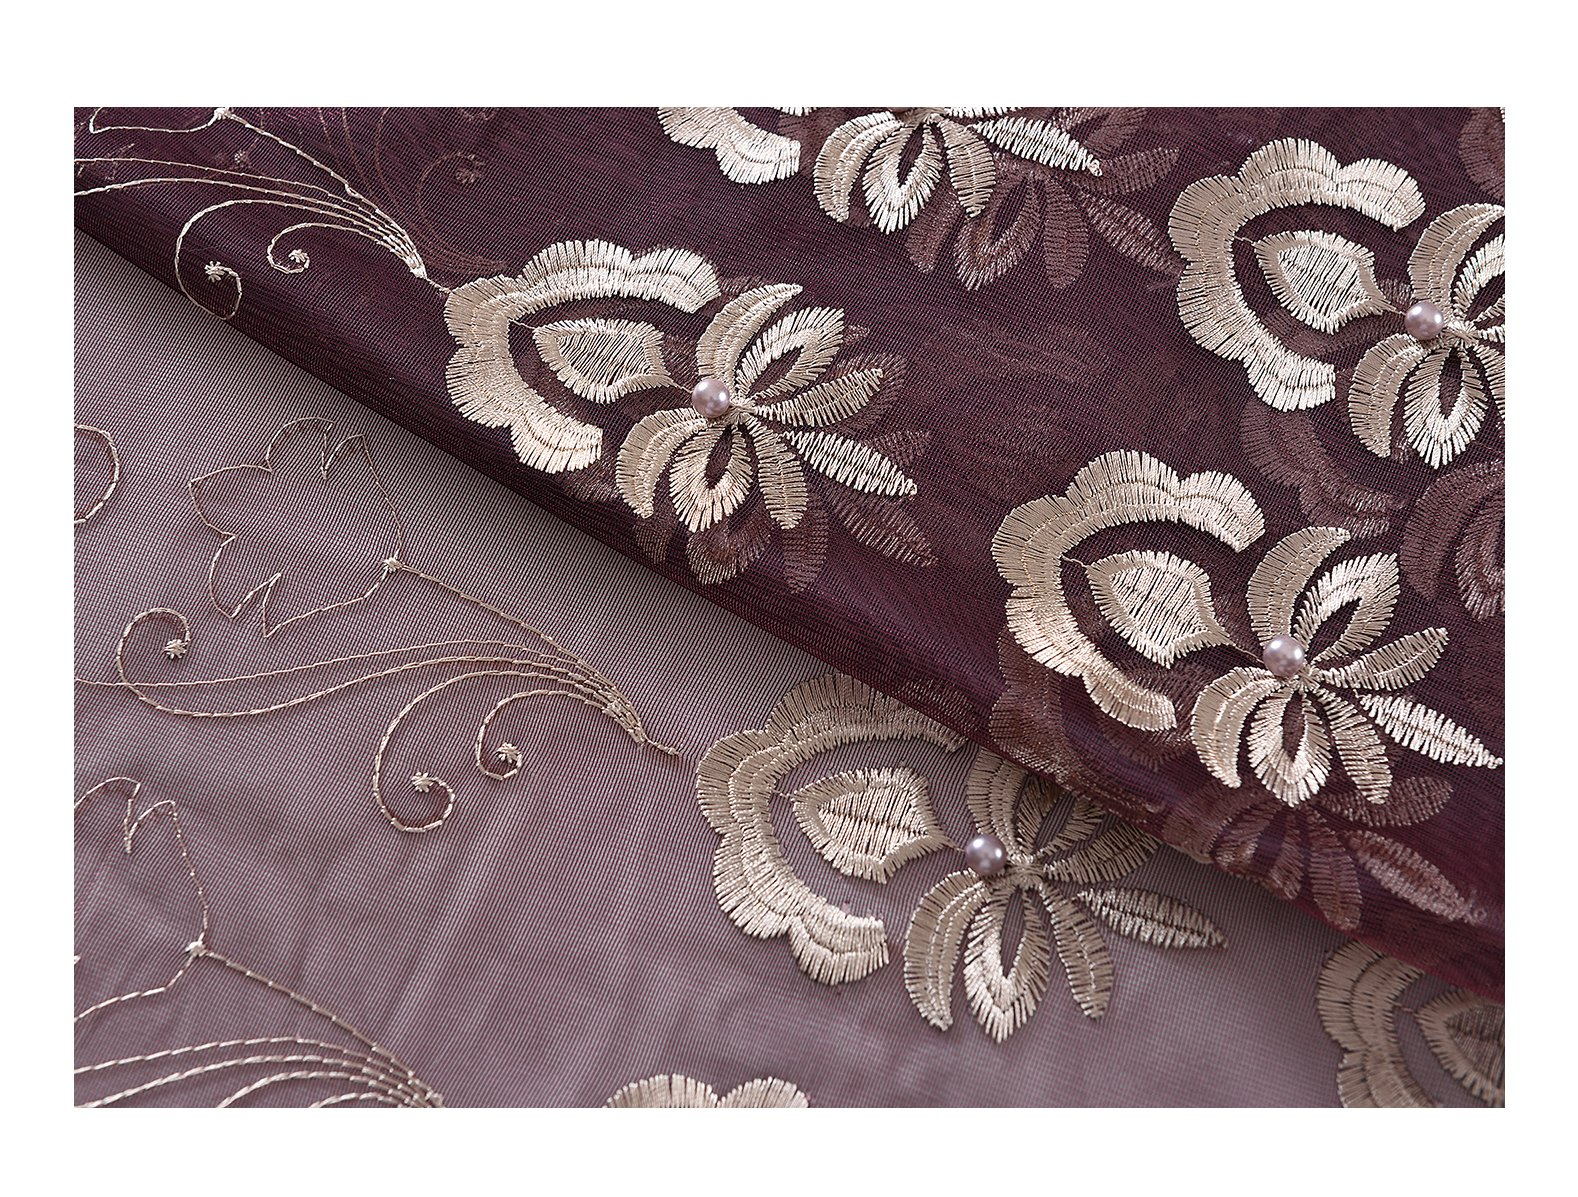 Aside Bside Rod Pocket Top Sheer Curtains with Beads Floral Array Embroidered Transparent Voile Drapes for Windows (1 Panel, W 52 x L 63 inch, Purple 12) -128163552638512C1PGC